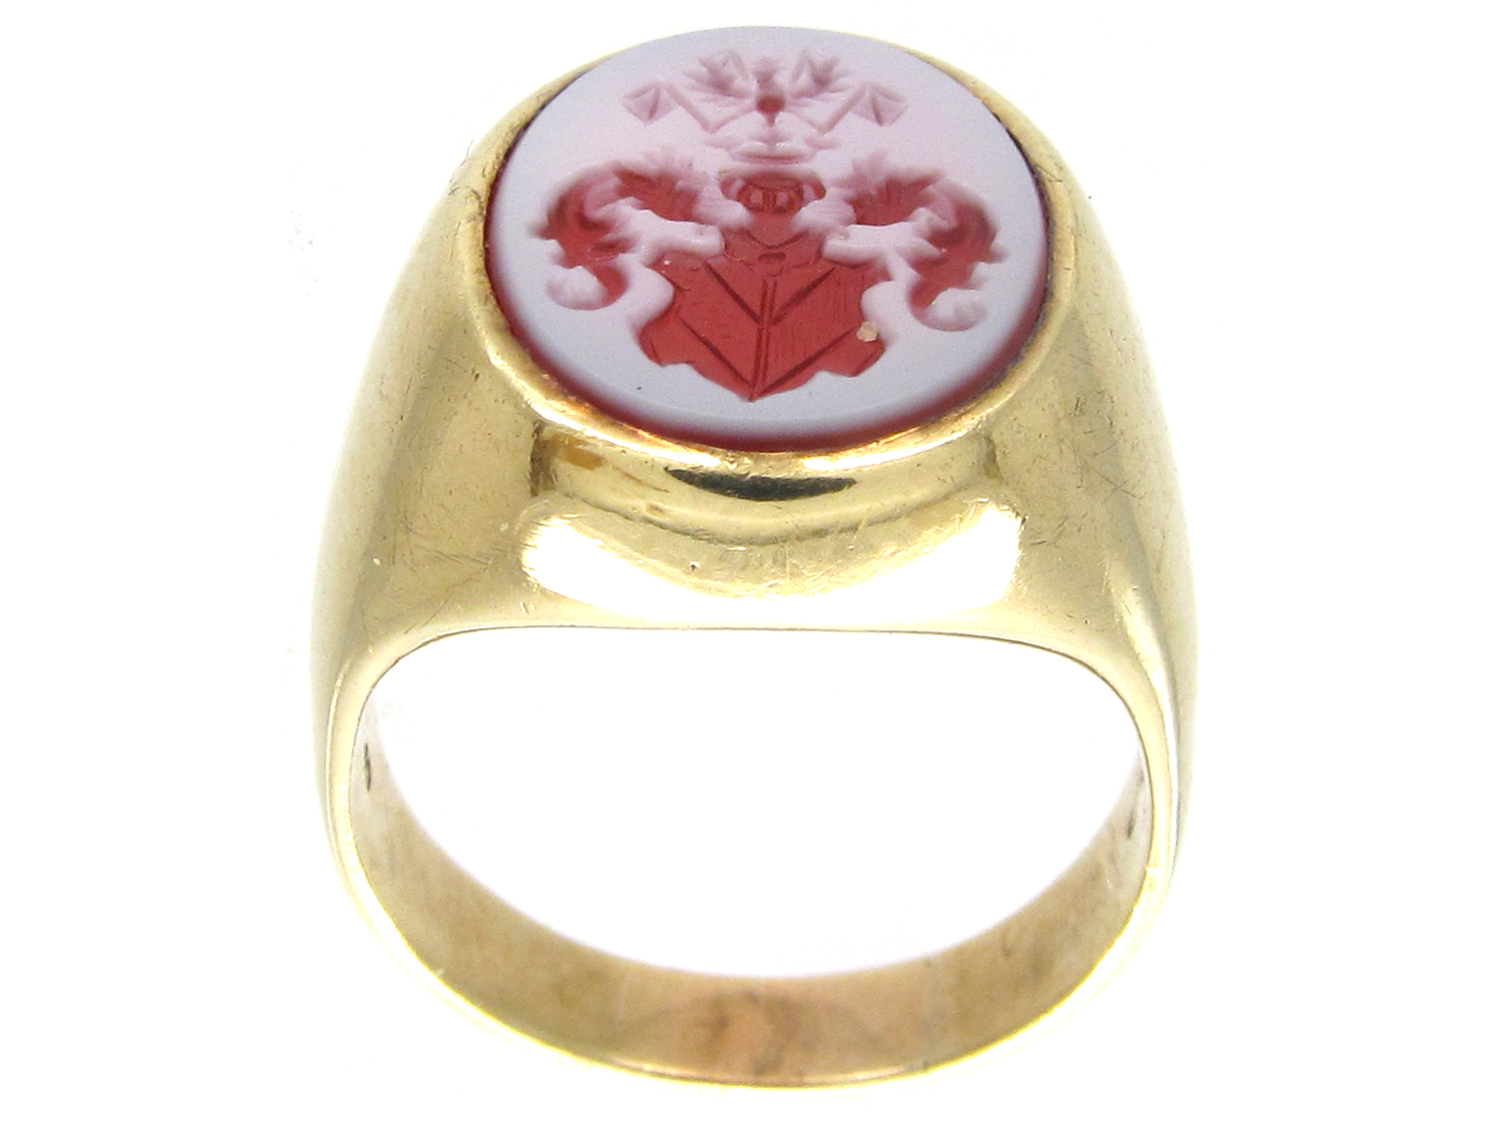 14ct Gold Amp Carnelian Crested Intaglio Signet Ring The